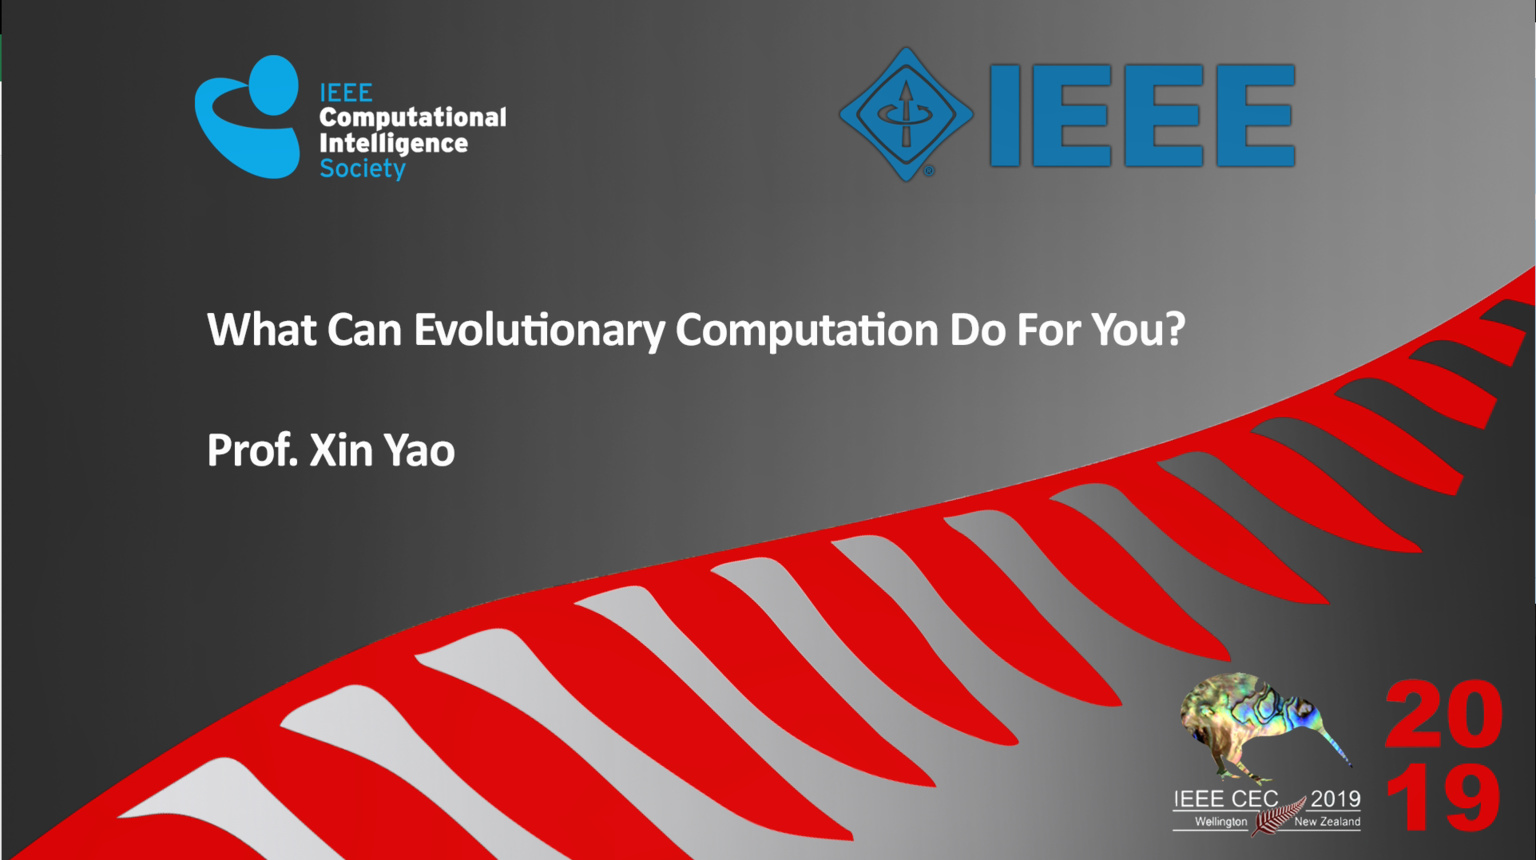 What Can Evolutionary Computation Do for You?